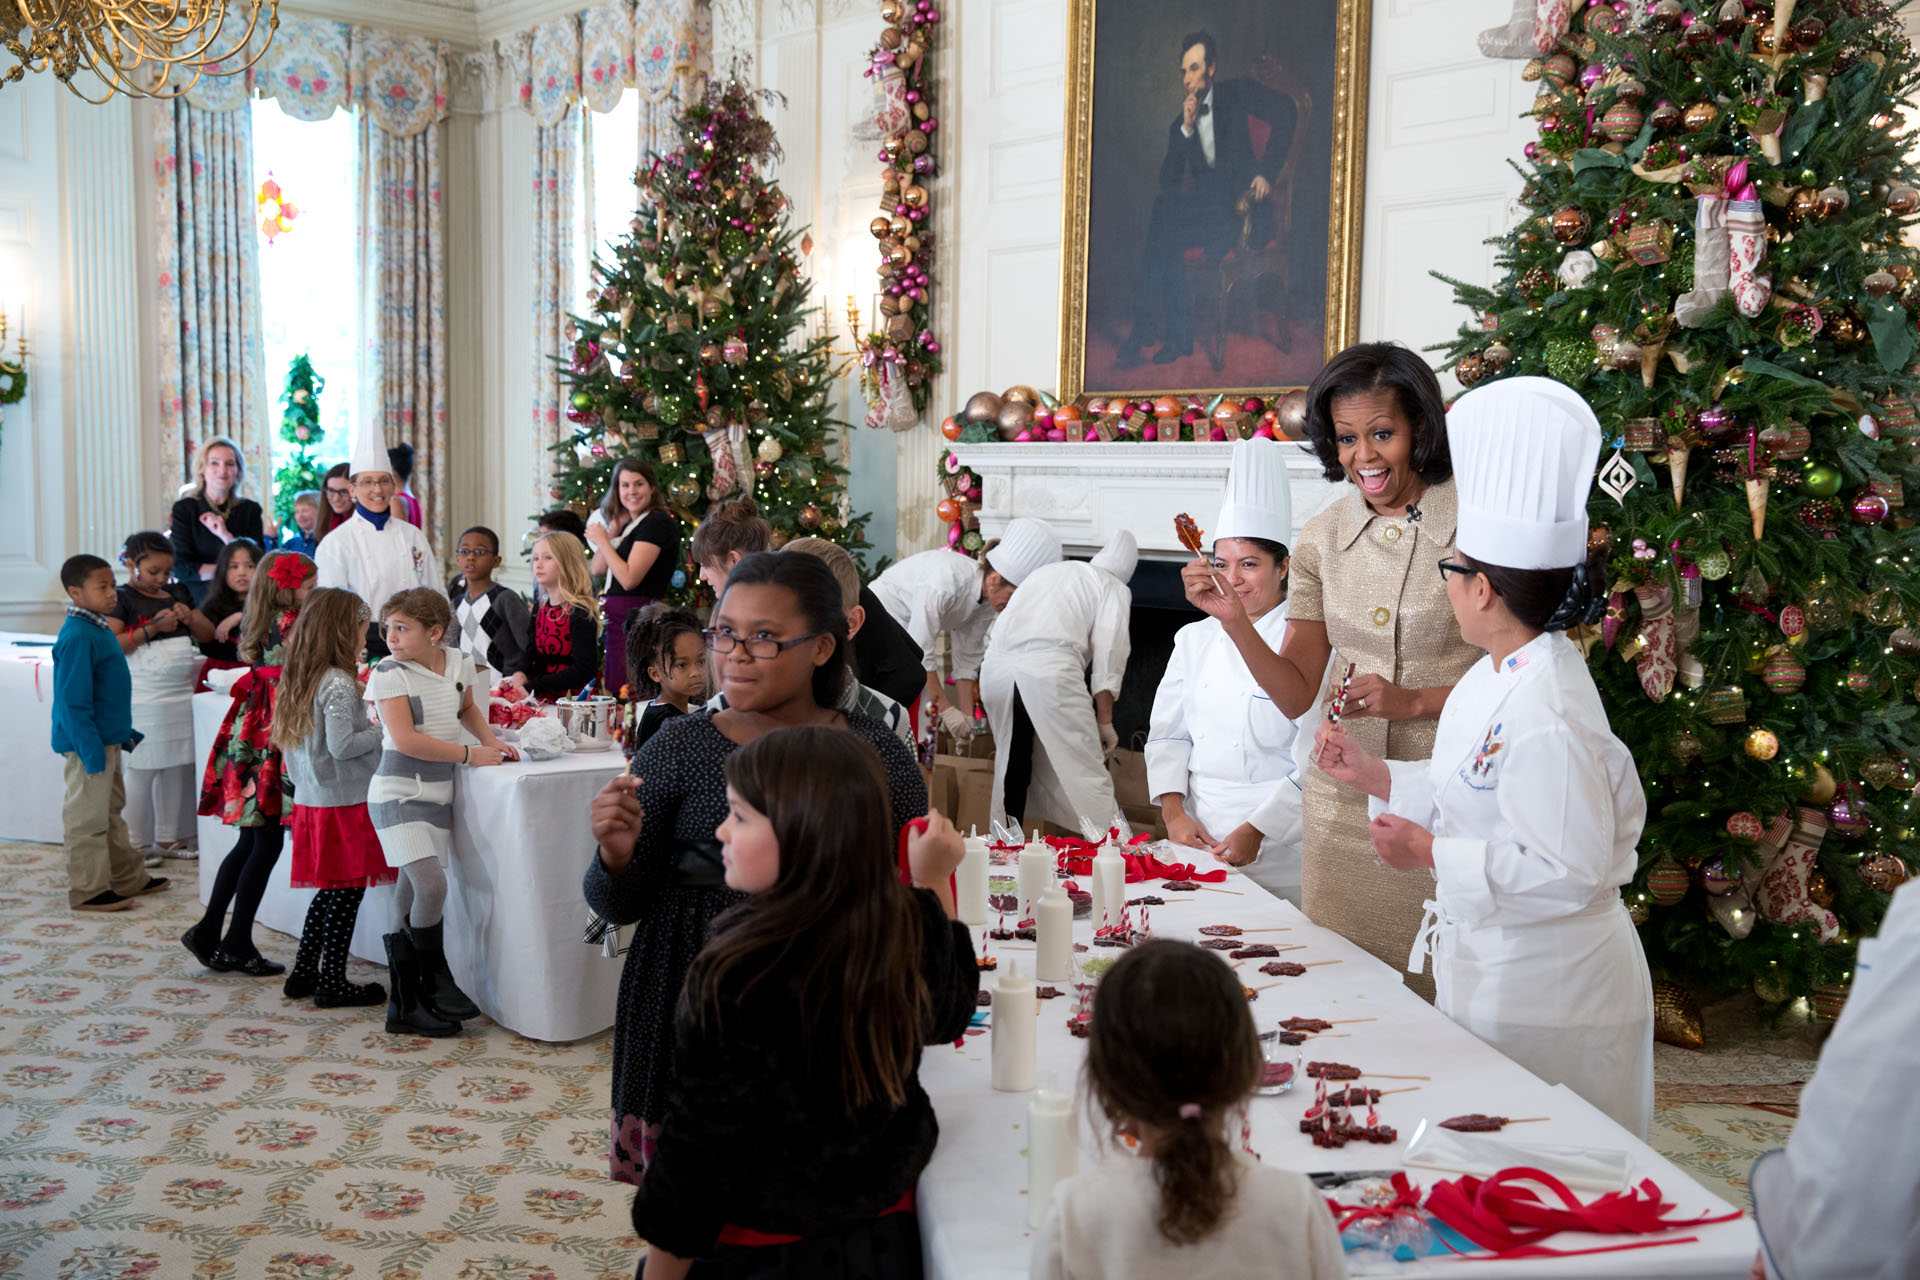 Holiday decorations at the white house are displayed during a press - First Lady Michelle Obama Makes A Honey Tea Stirrer During The Holiday Press Preview Nov